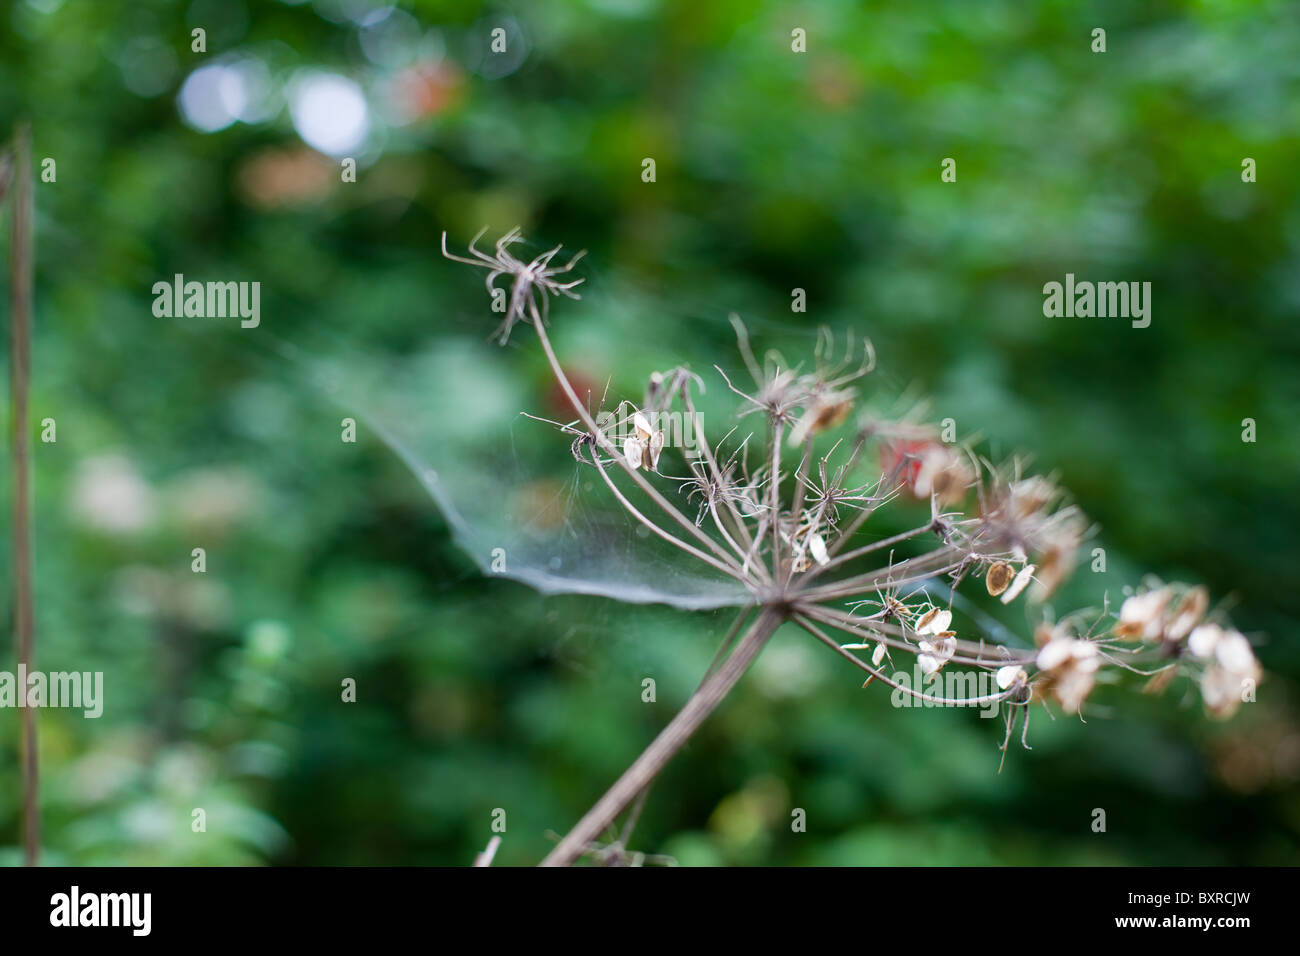 Cobwebs on a dead plant - Stock Image